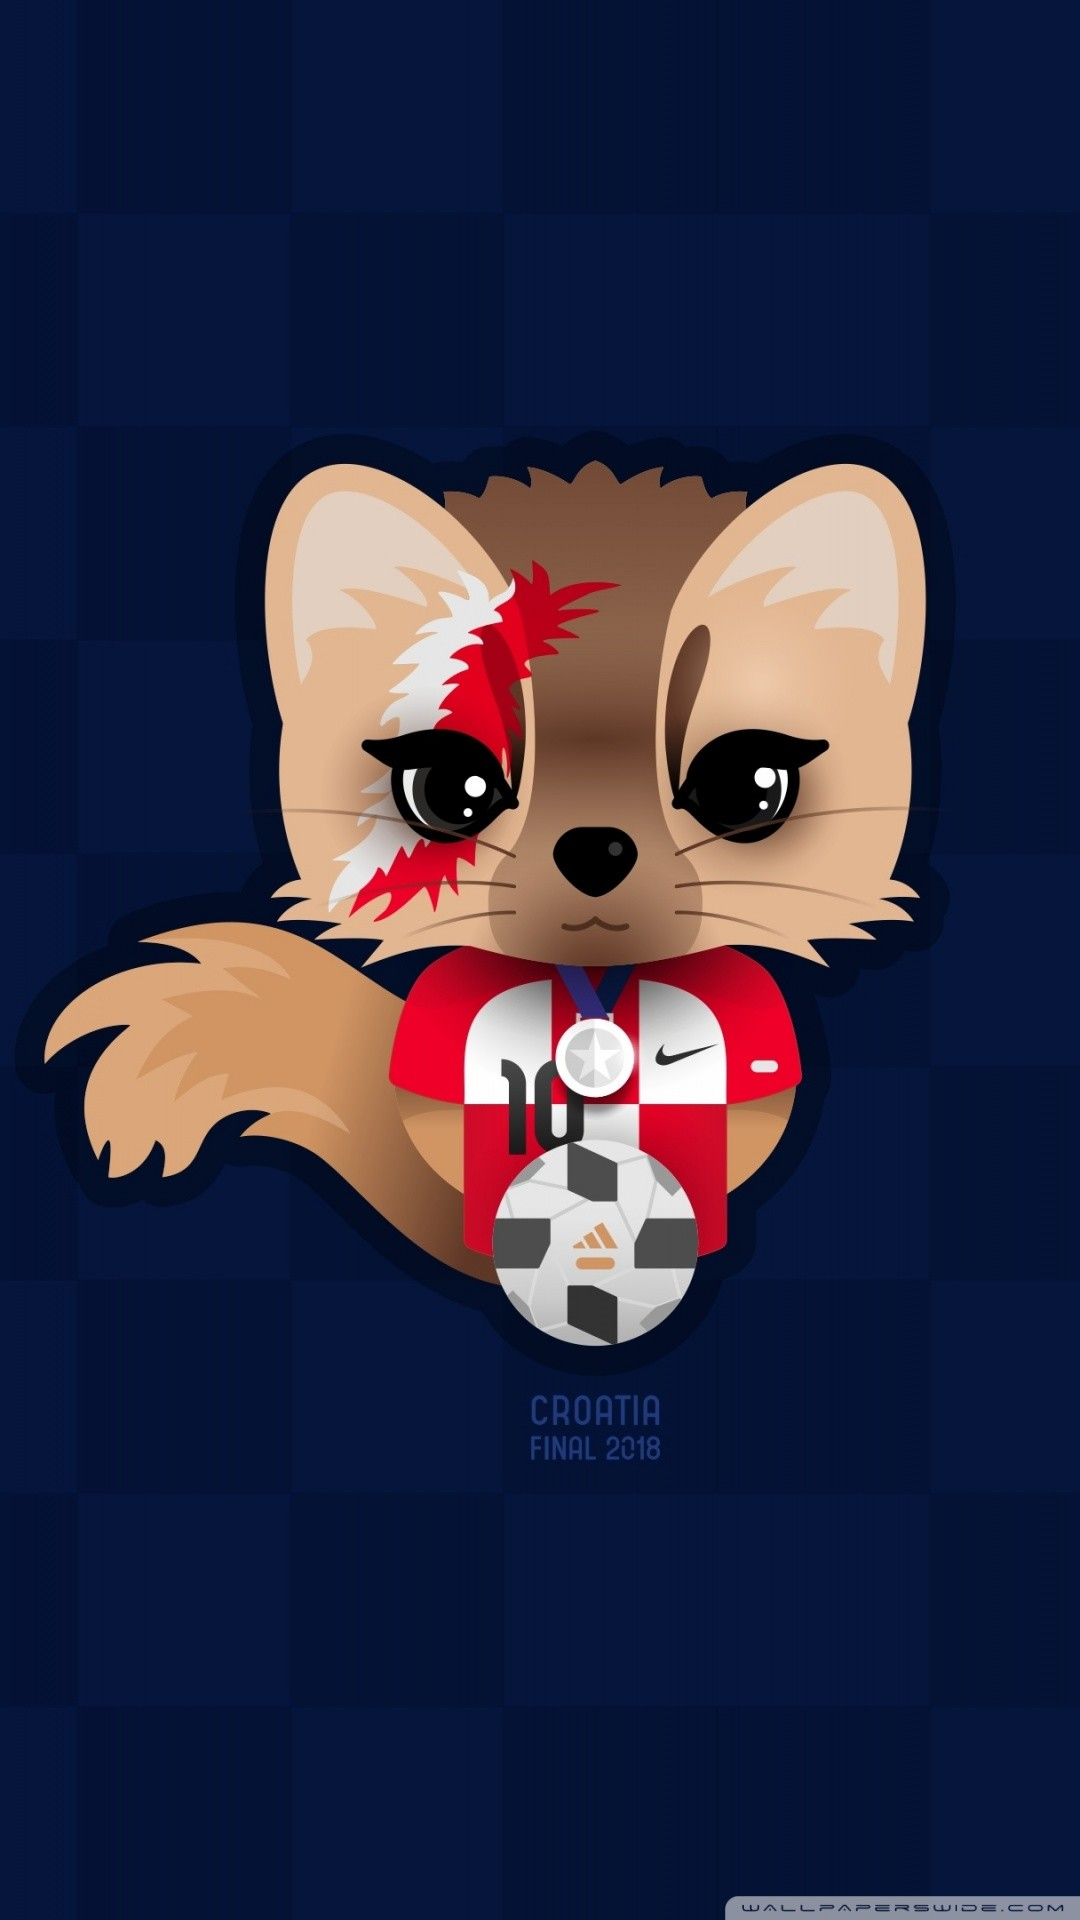 Free Croatia Football Character Design phone wallpaper by camn50